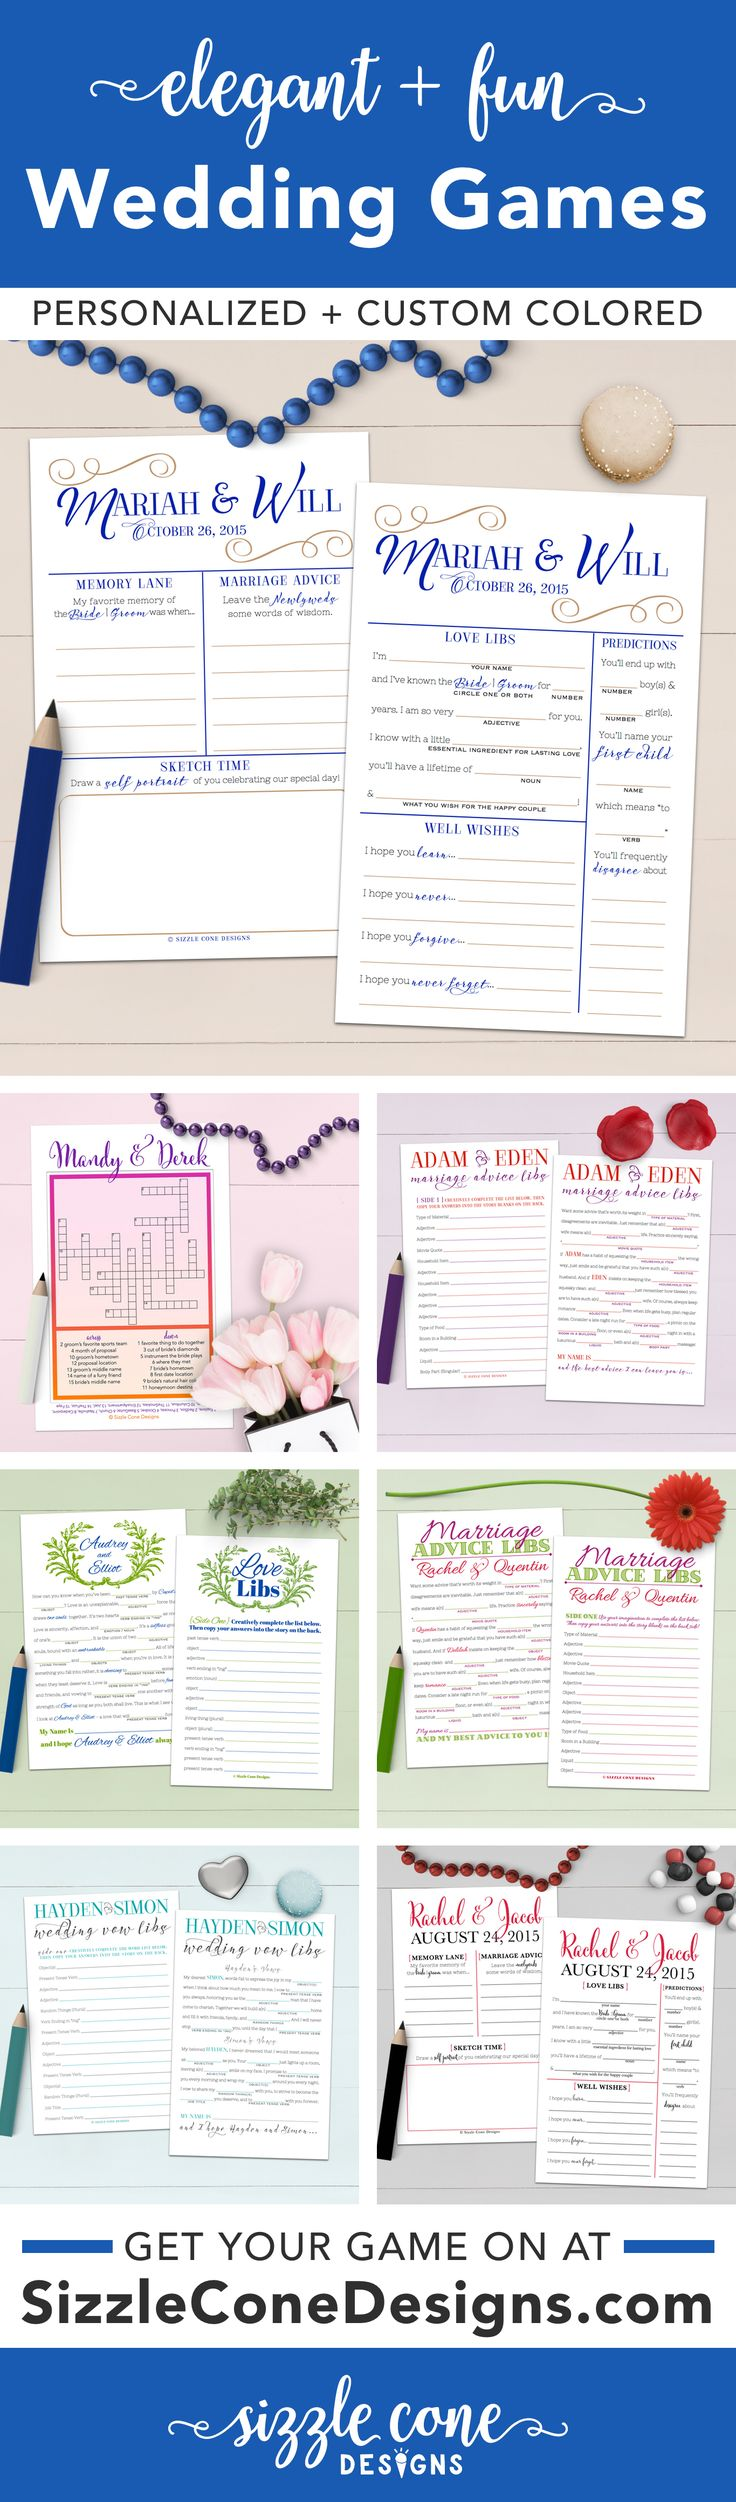 Wedding mad libs, crossword puzzles, guestbook alternatives, & more!